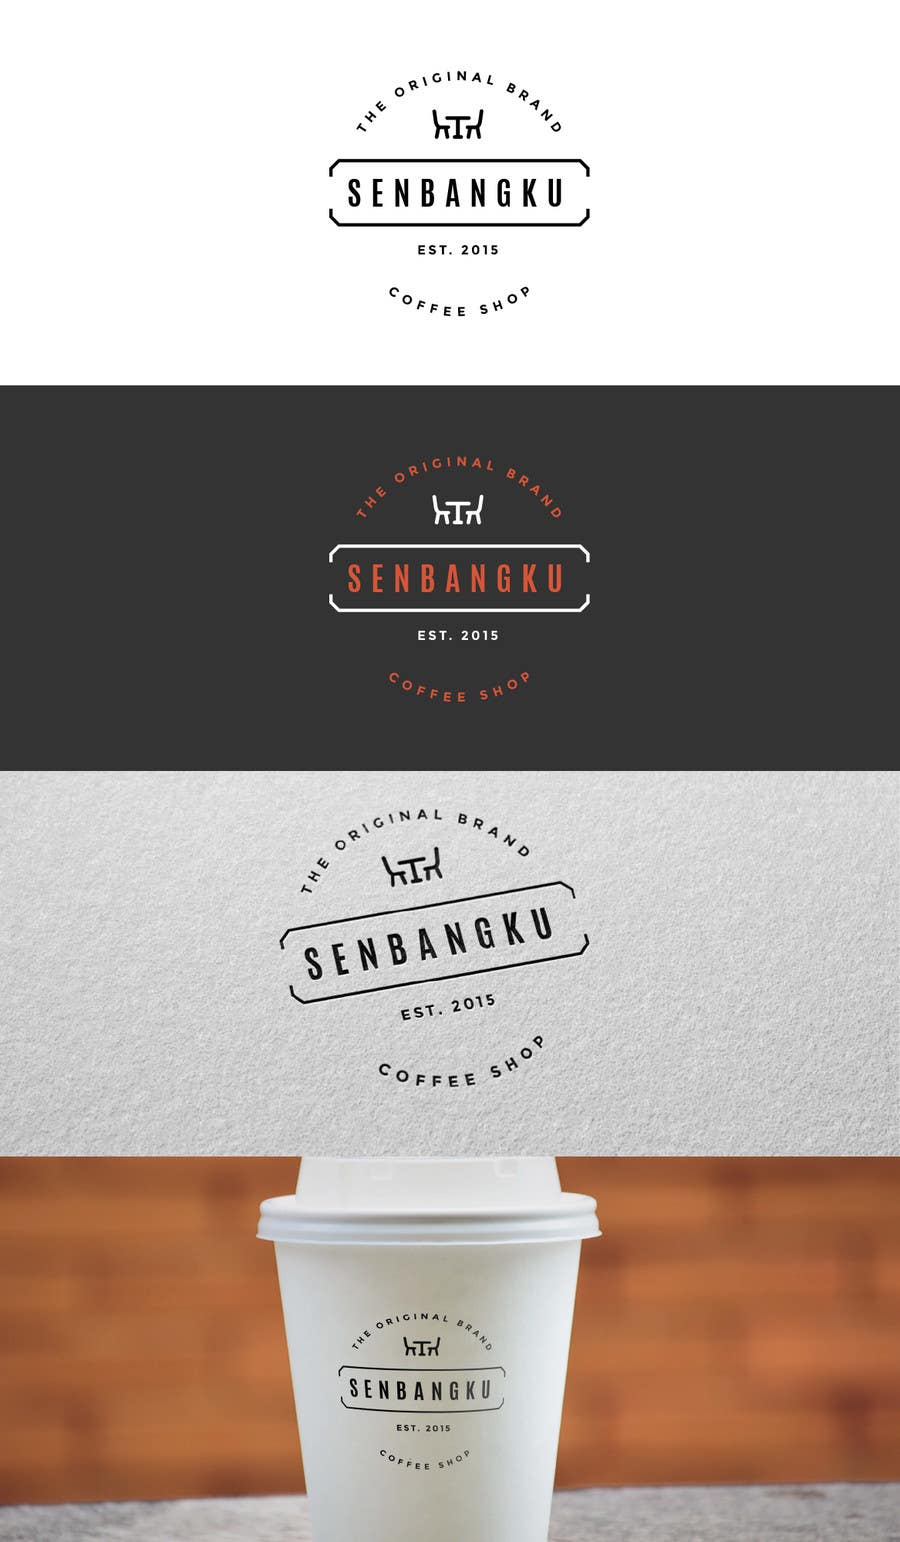 Konkurrenceindlæg #100 for Logo Design for Our Brand New Coffee Shop